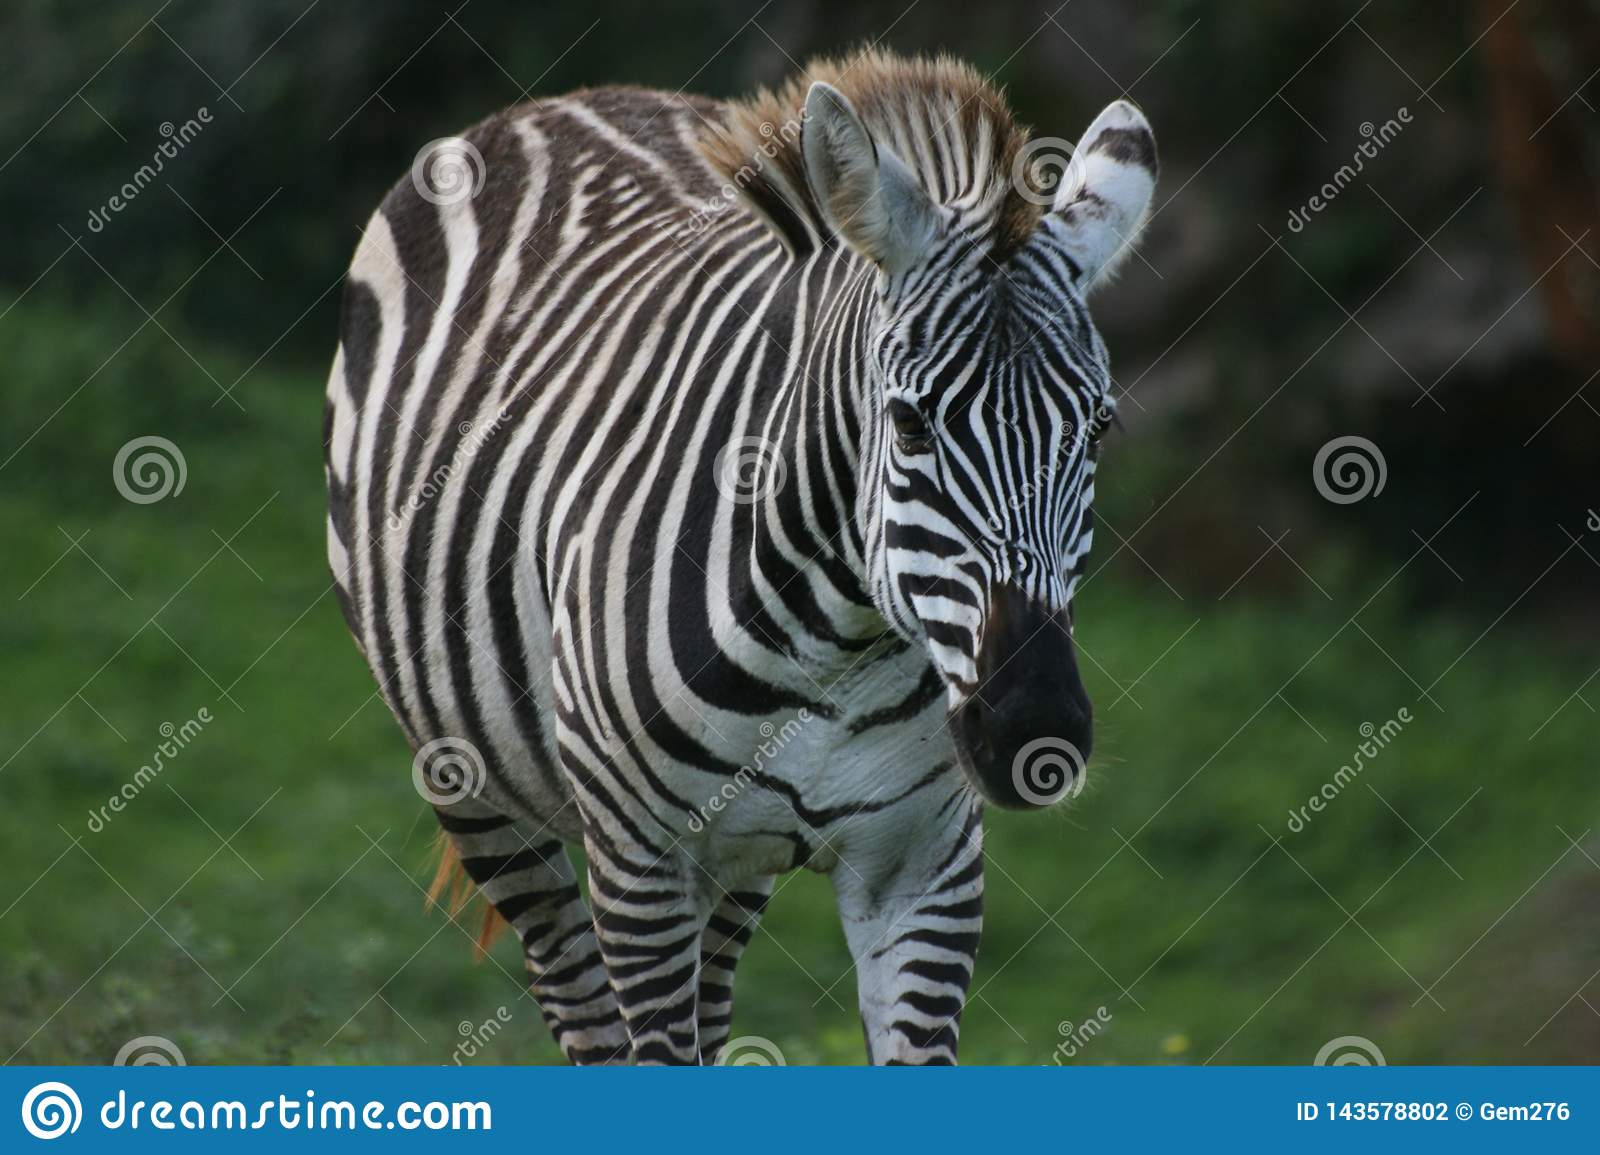 Zebra looking to the camera